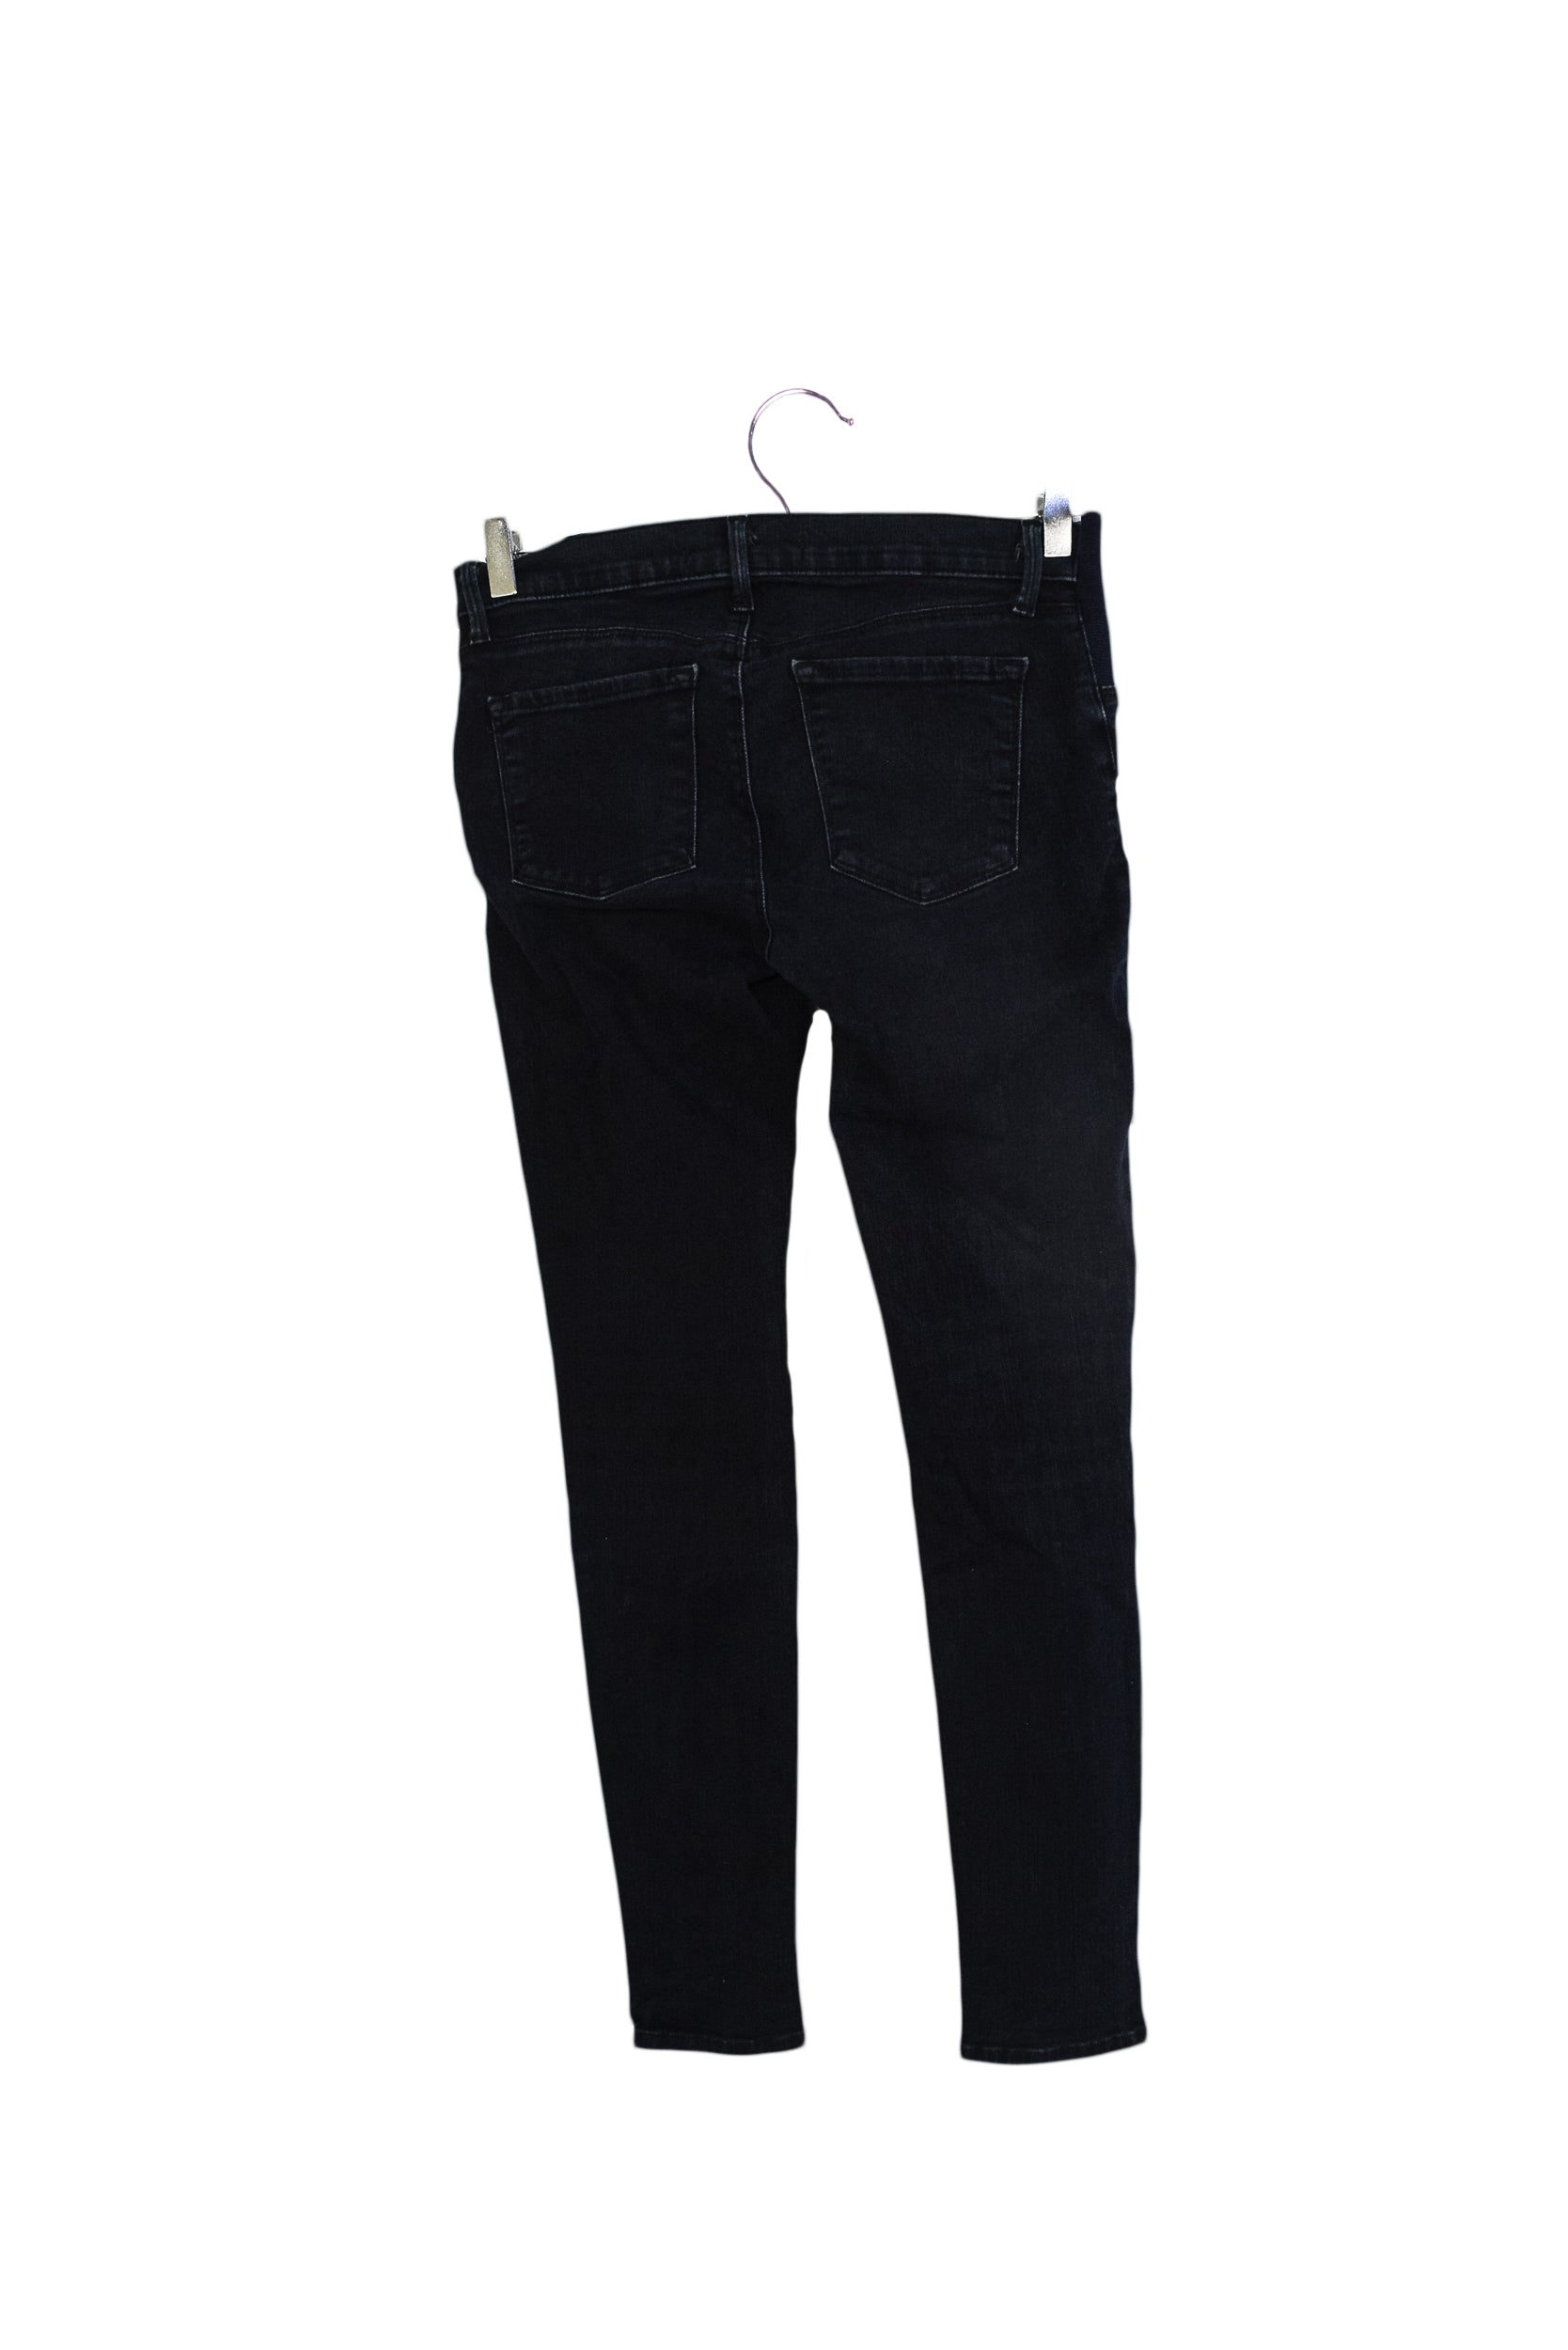 Maternity Jeans M (Size 28) at Retykle